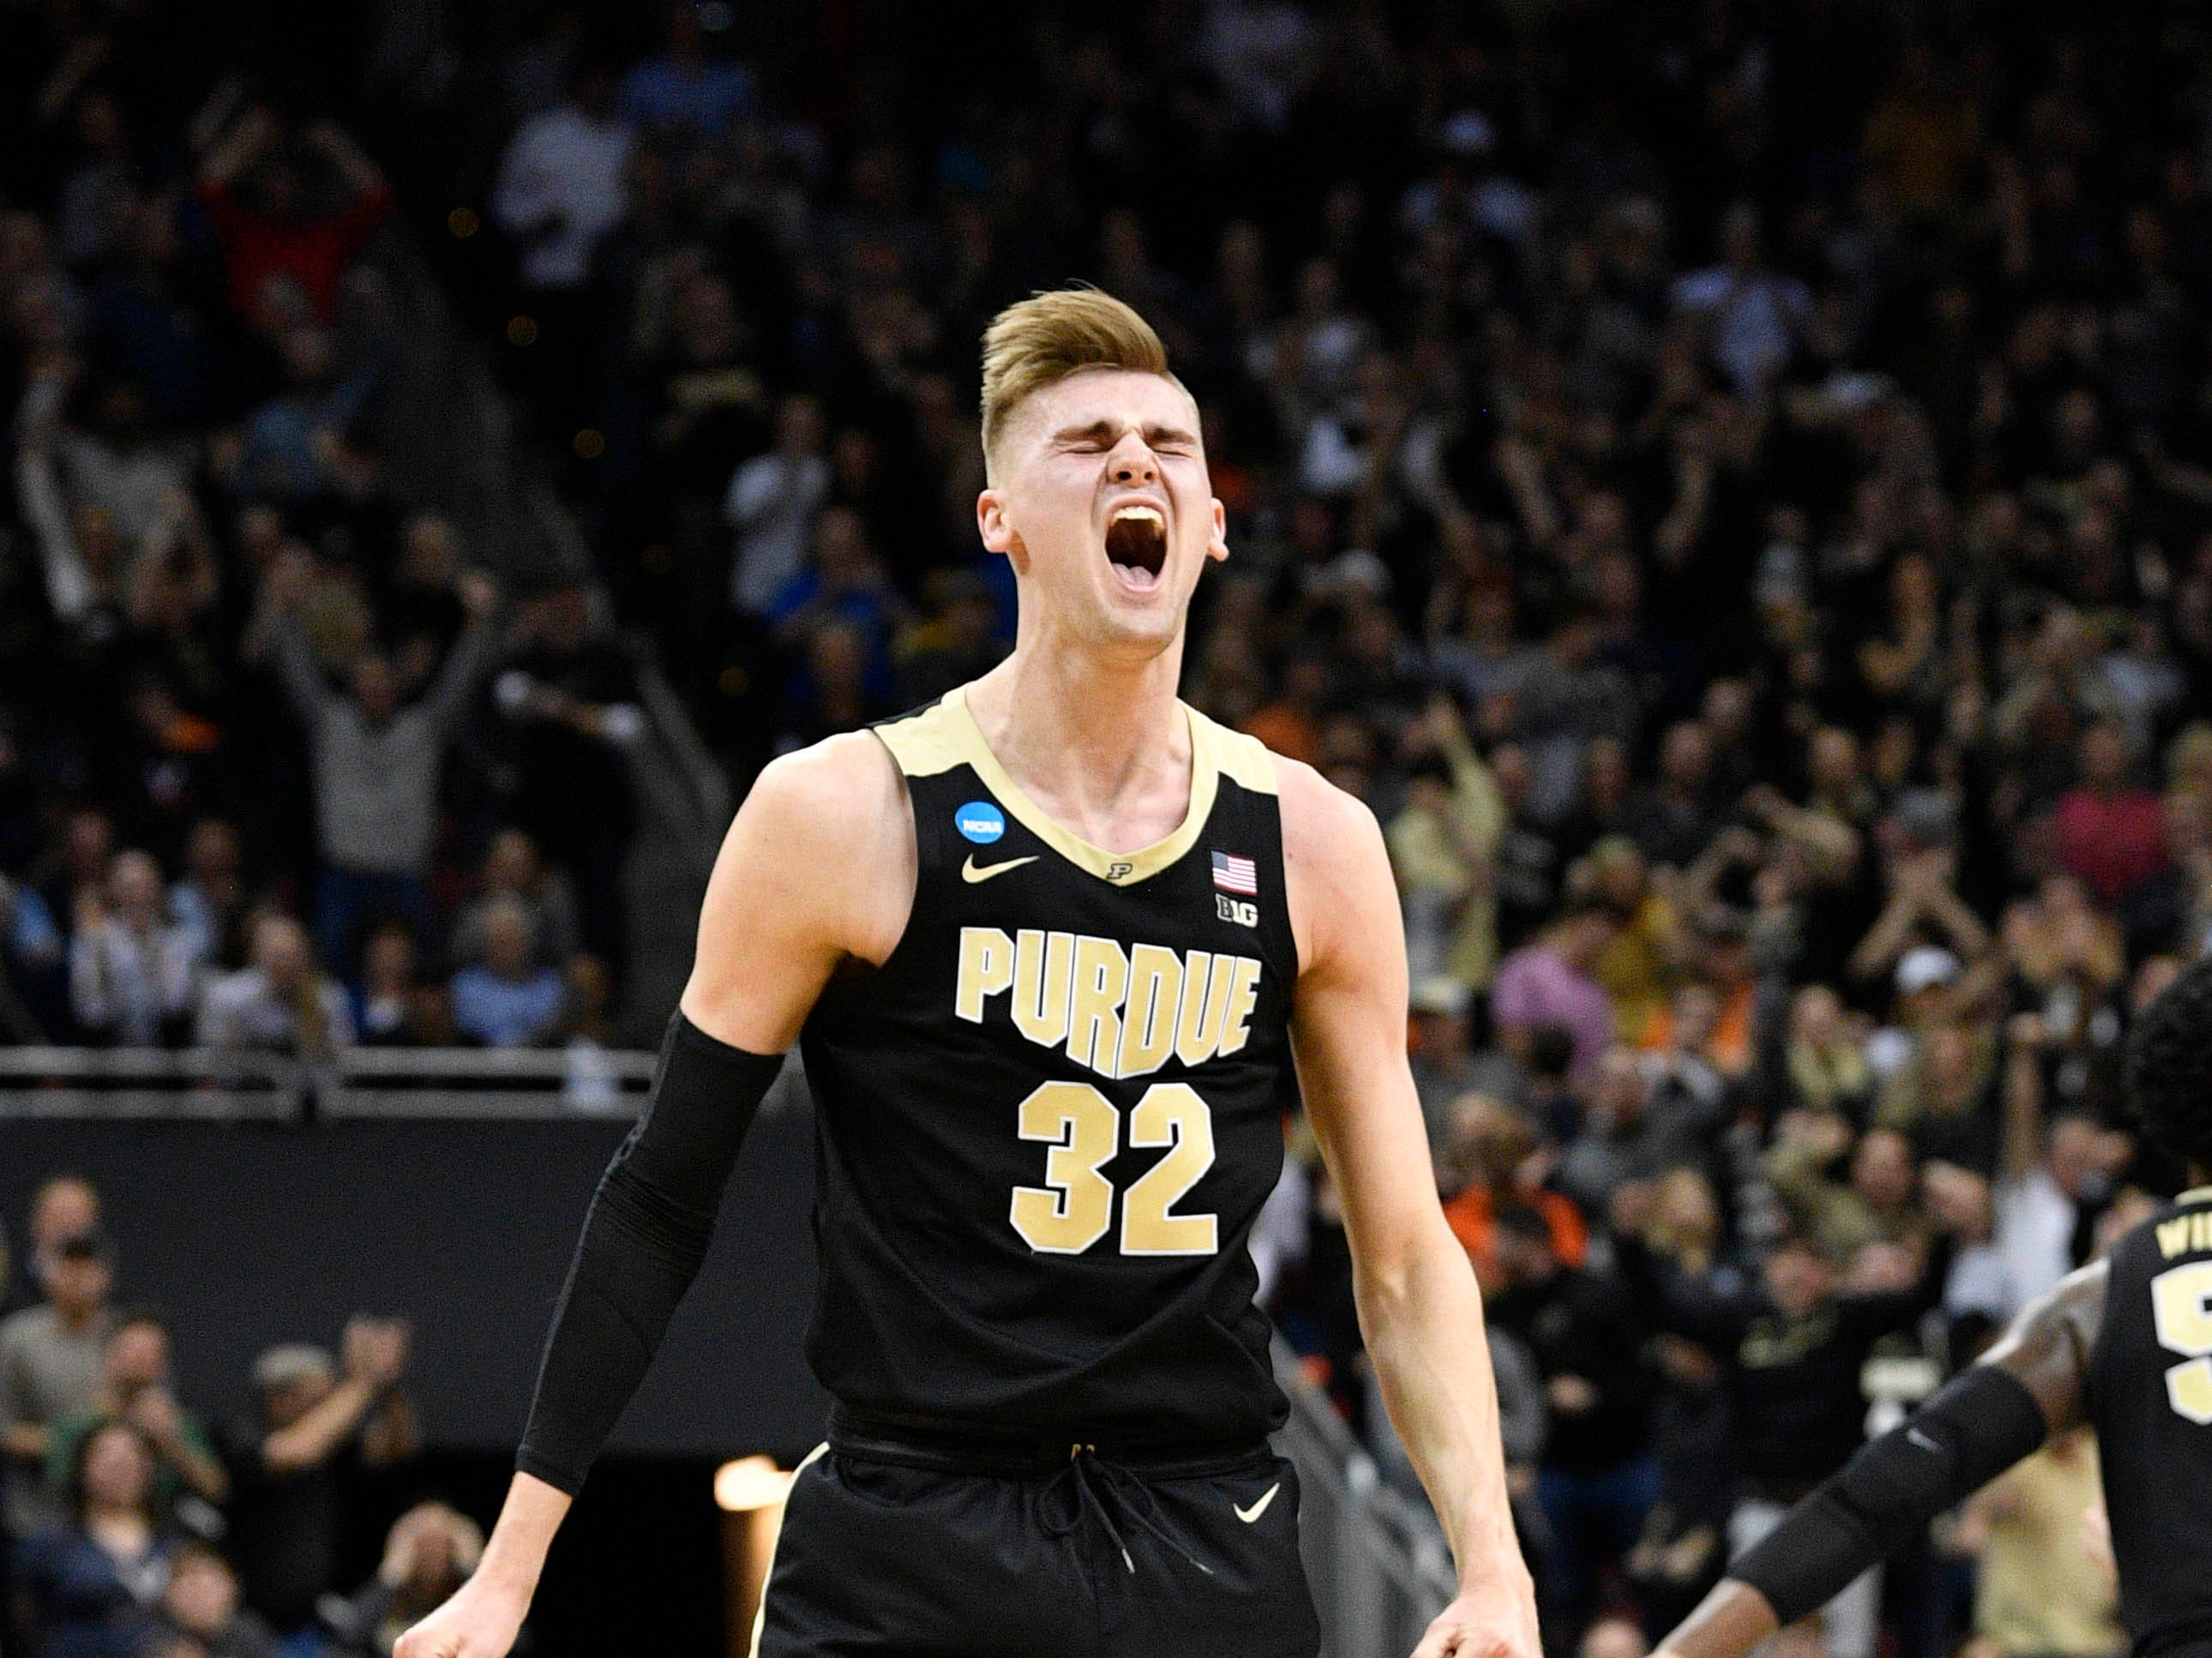 Mar 30, 2019; Louisville, KY, United States; Purdue Boilermakers center Matt Haarms (32) reacts during the second half in the championship game against the Virginia Cavaliers of the south regional of the 2019 NCAA Tournament at KFC Yum Center. Mandatory Credit: Jamie Rhodes-USA TODAY Sports